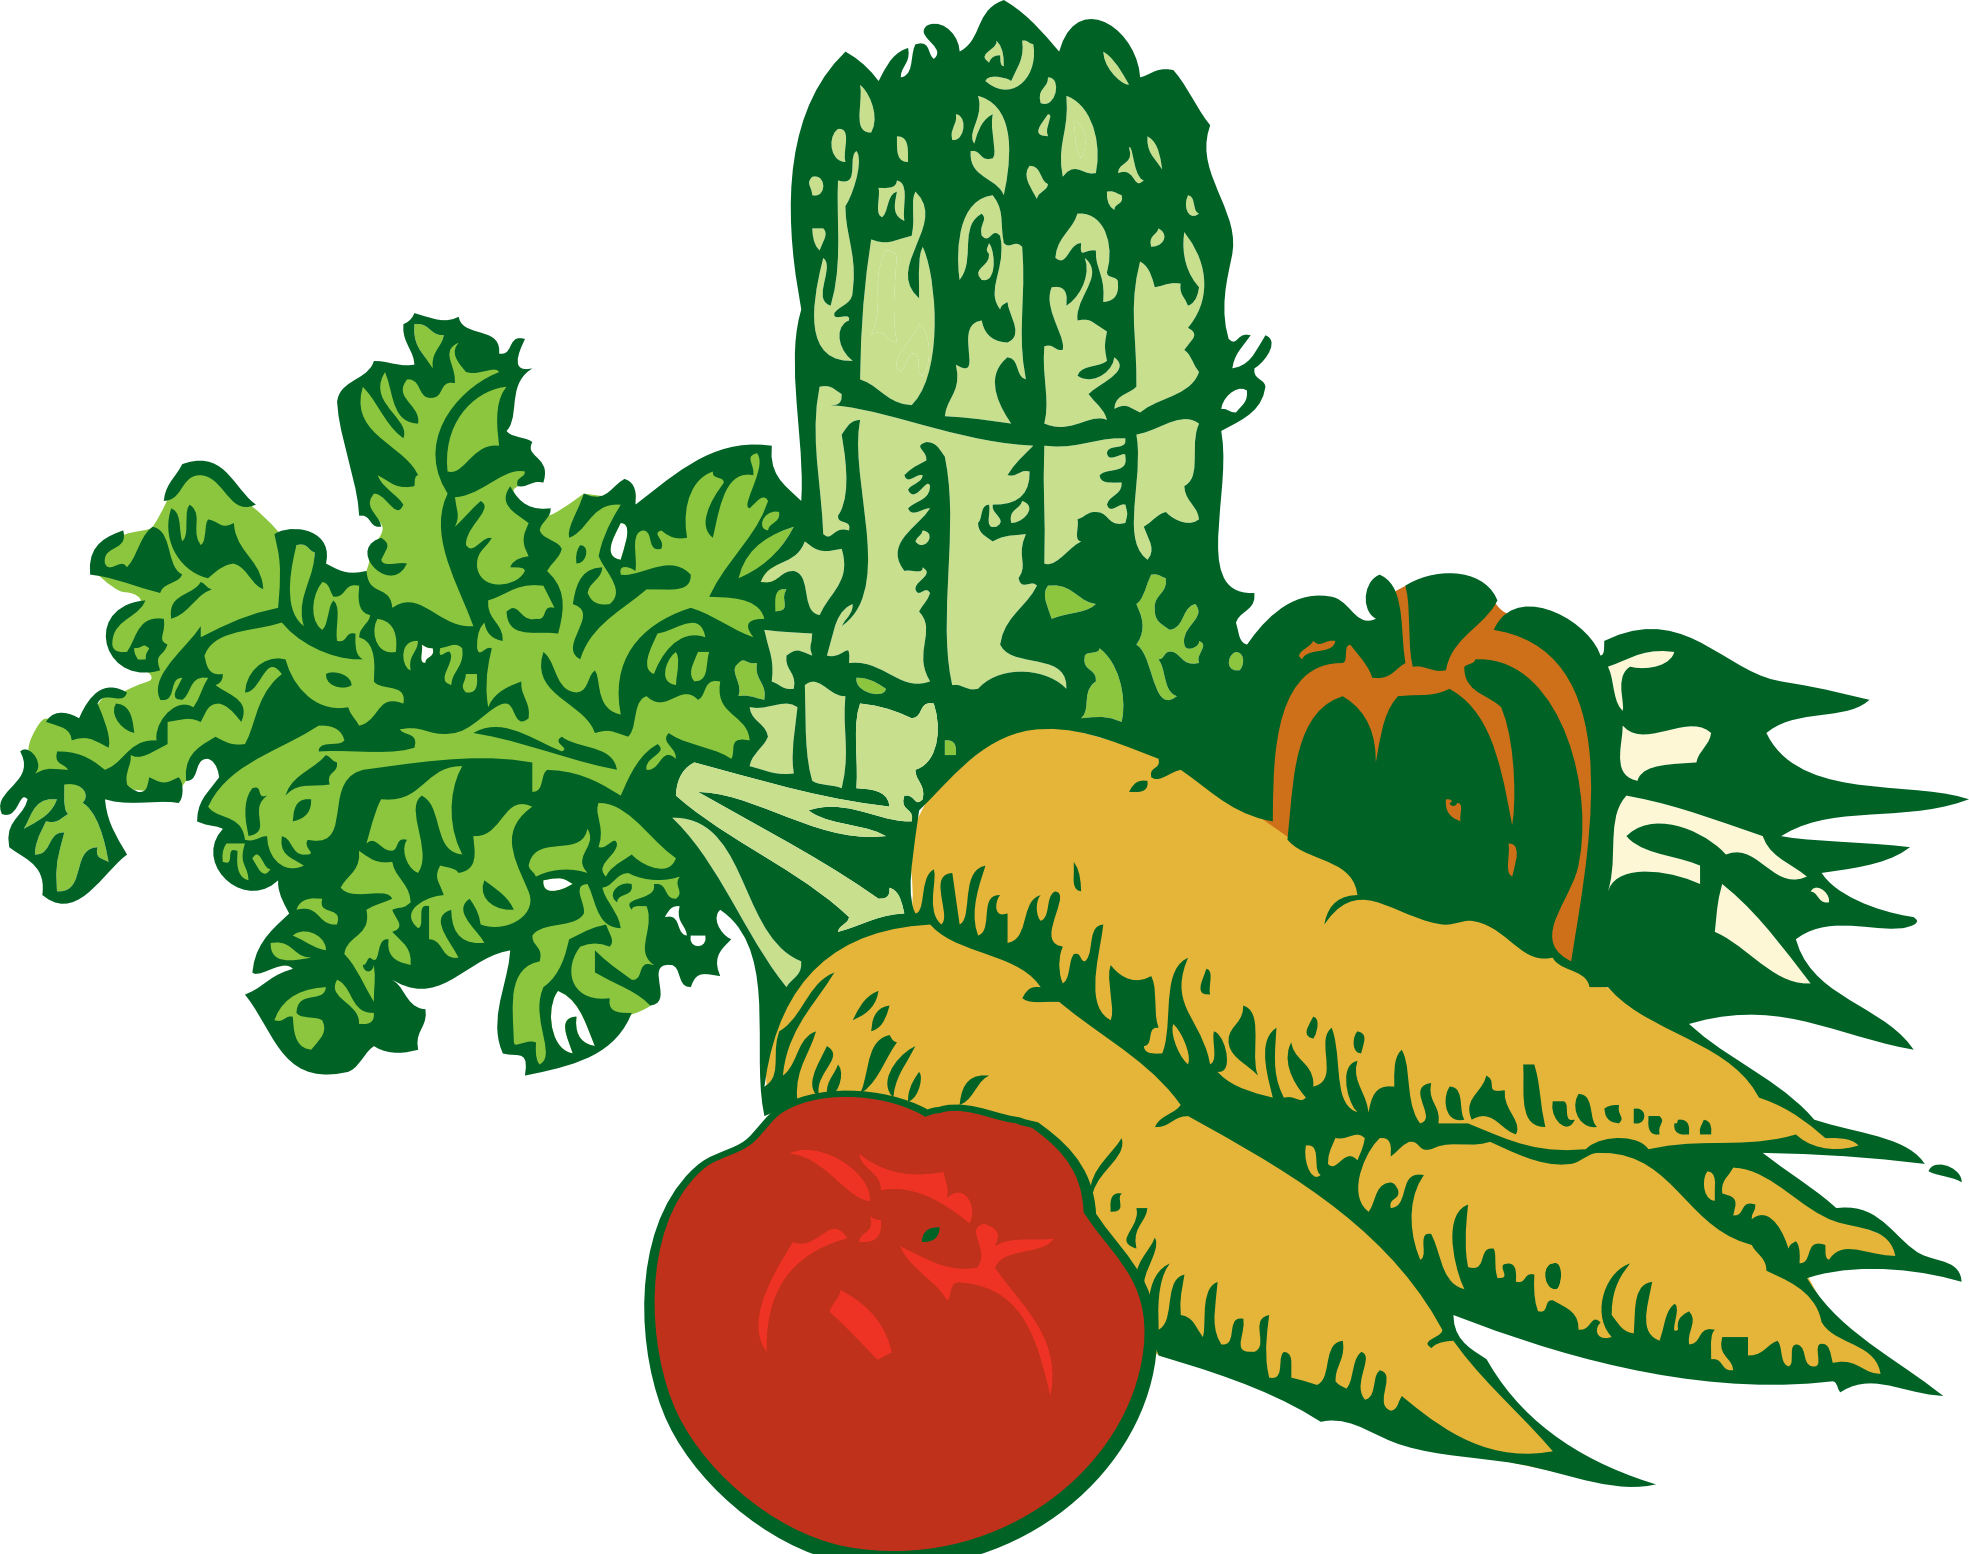 banner royalty free stock Vegetable clipart. Vegetables panda free images